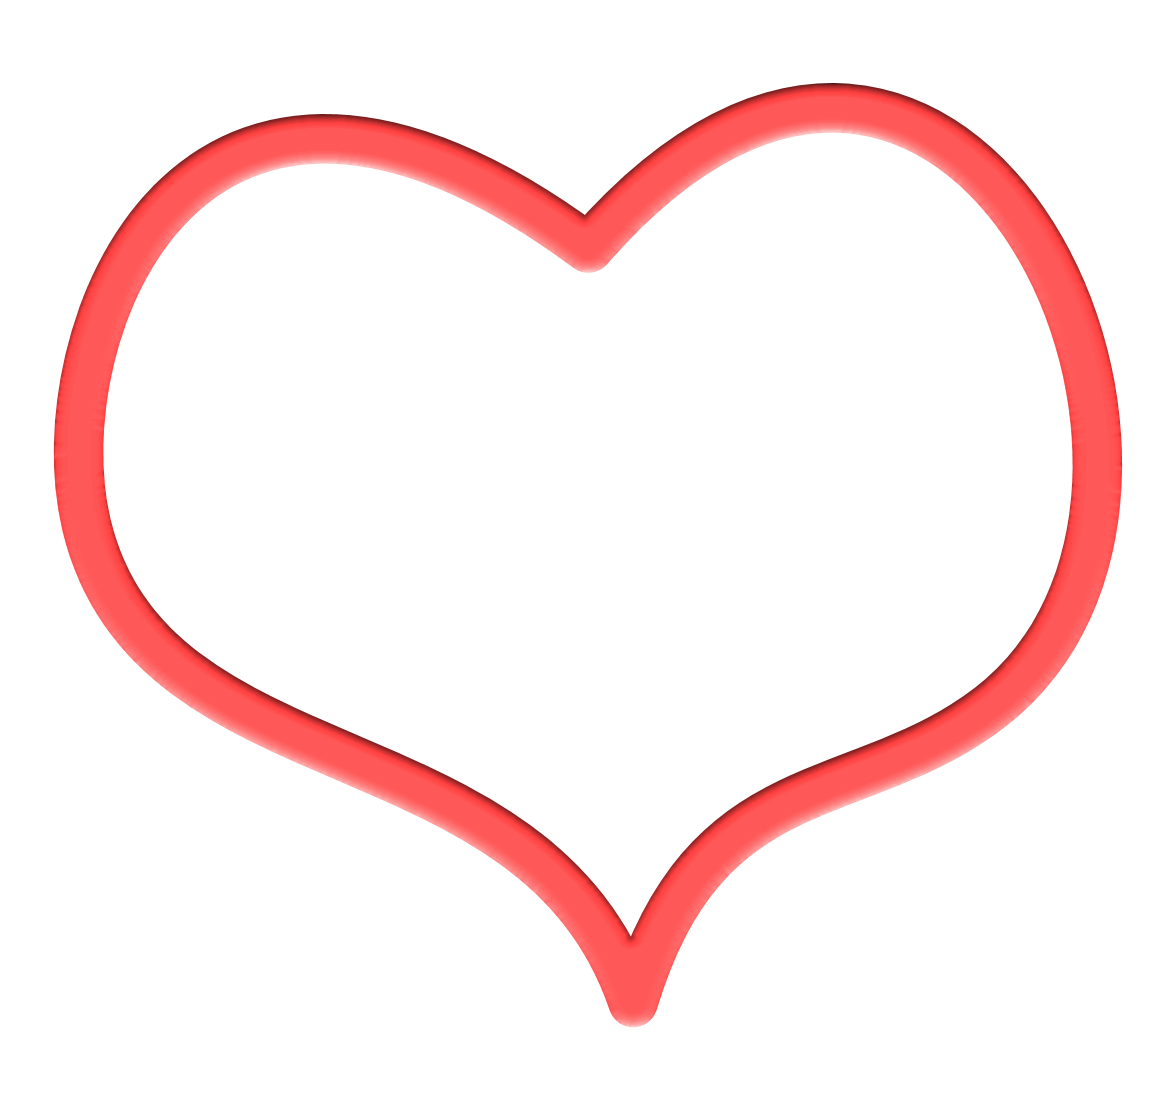 Free Heart Frame Transparent, Download Free Clip Art, Free.